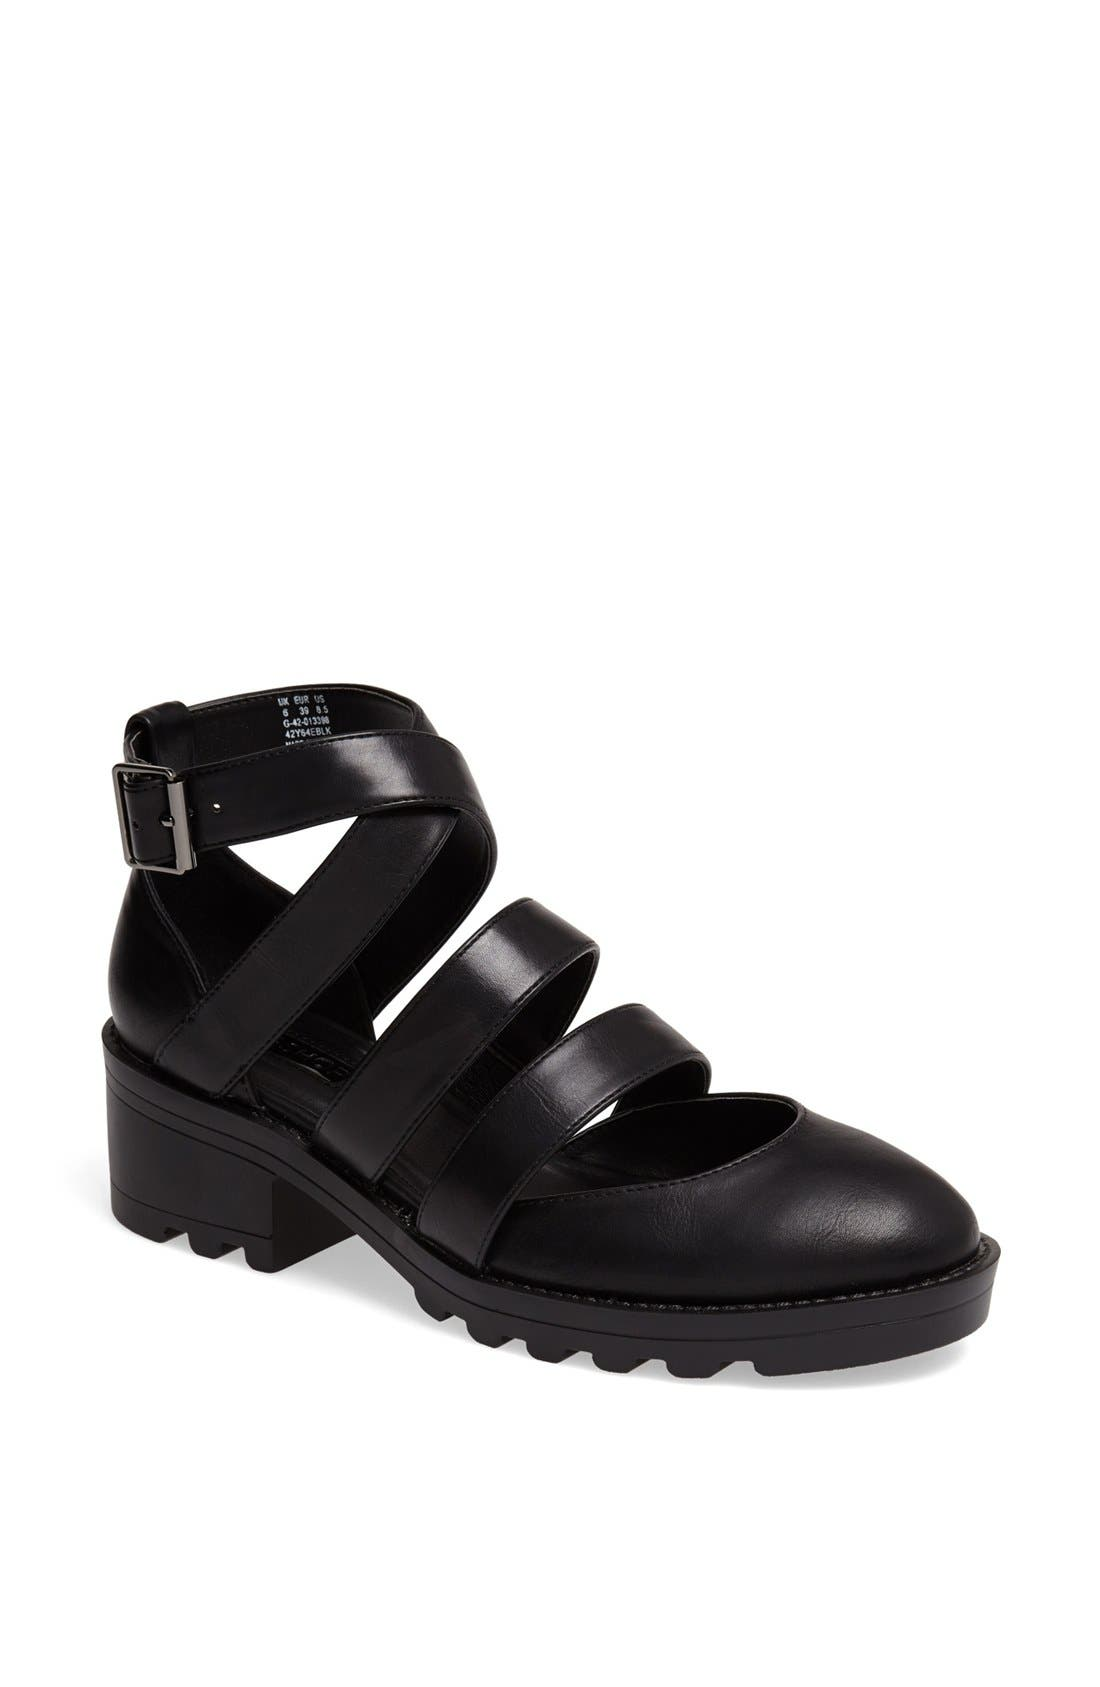 Alternate Image 1 Selected - Topshop 'Mingle' Strappy Shoe